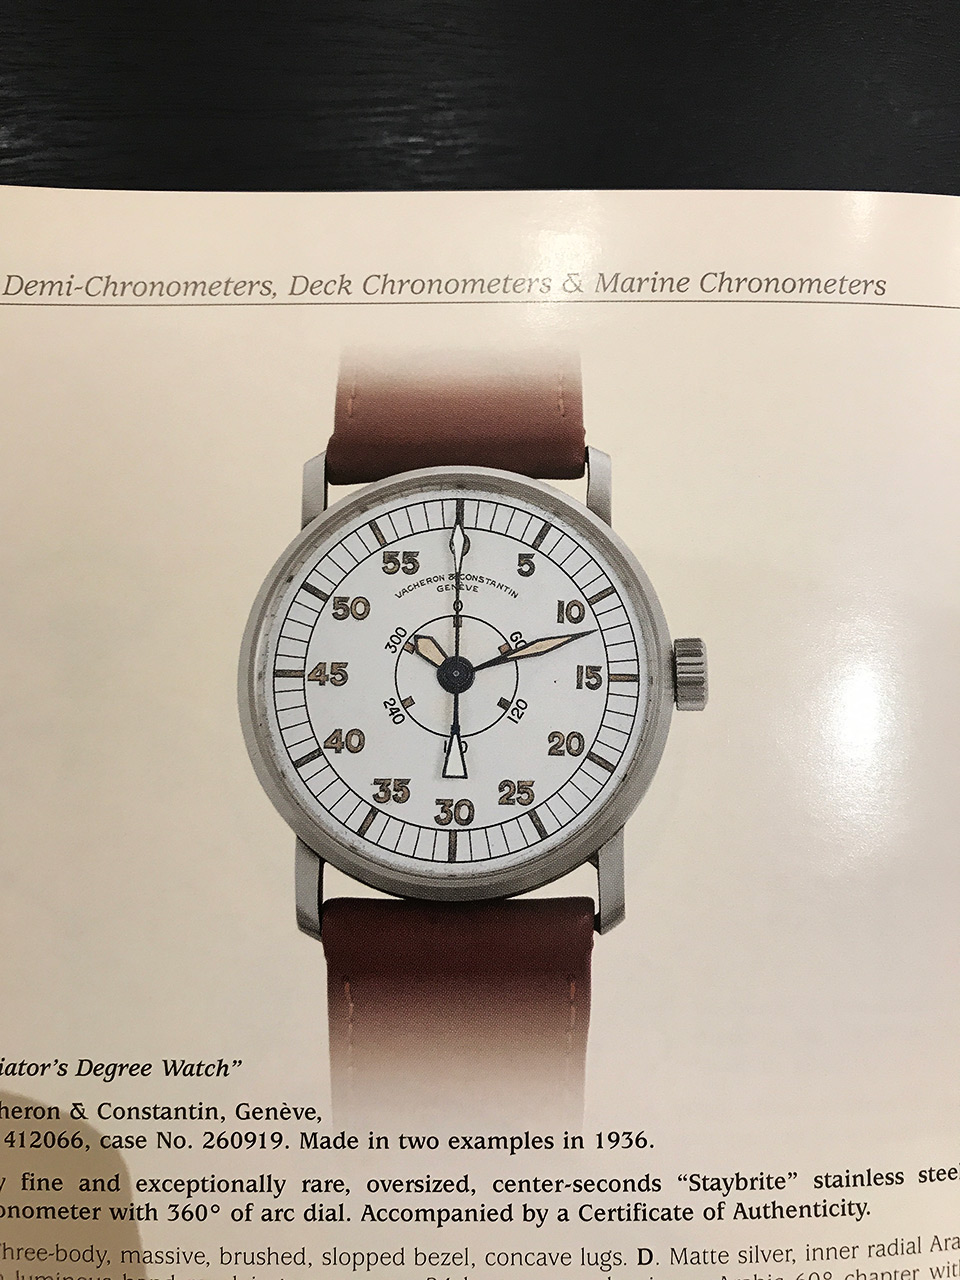 180319-vacheron-constantin-geneva-boutique-antiquorum-catalogue-aviator